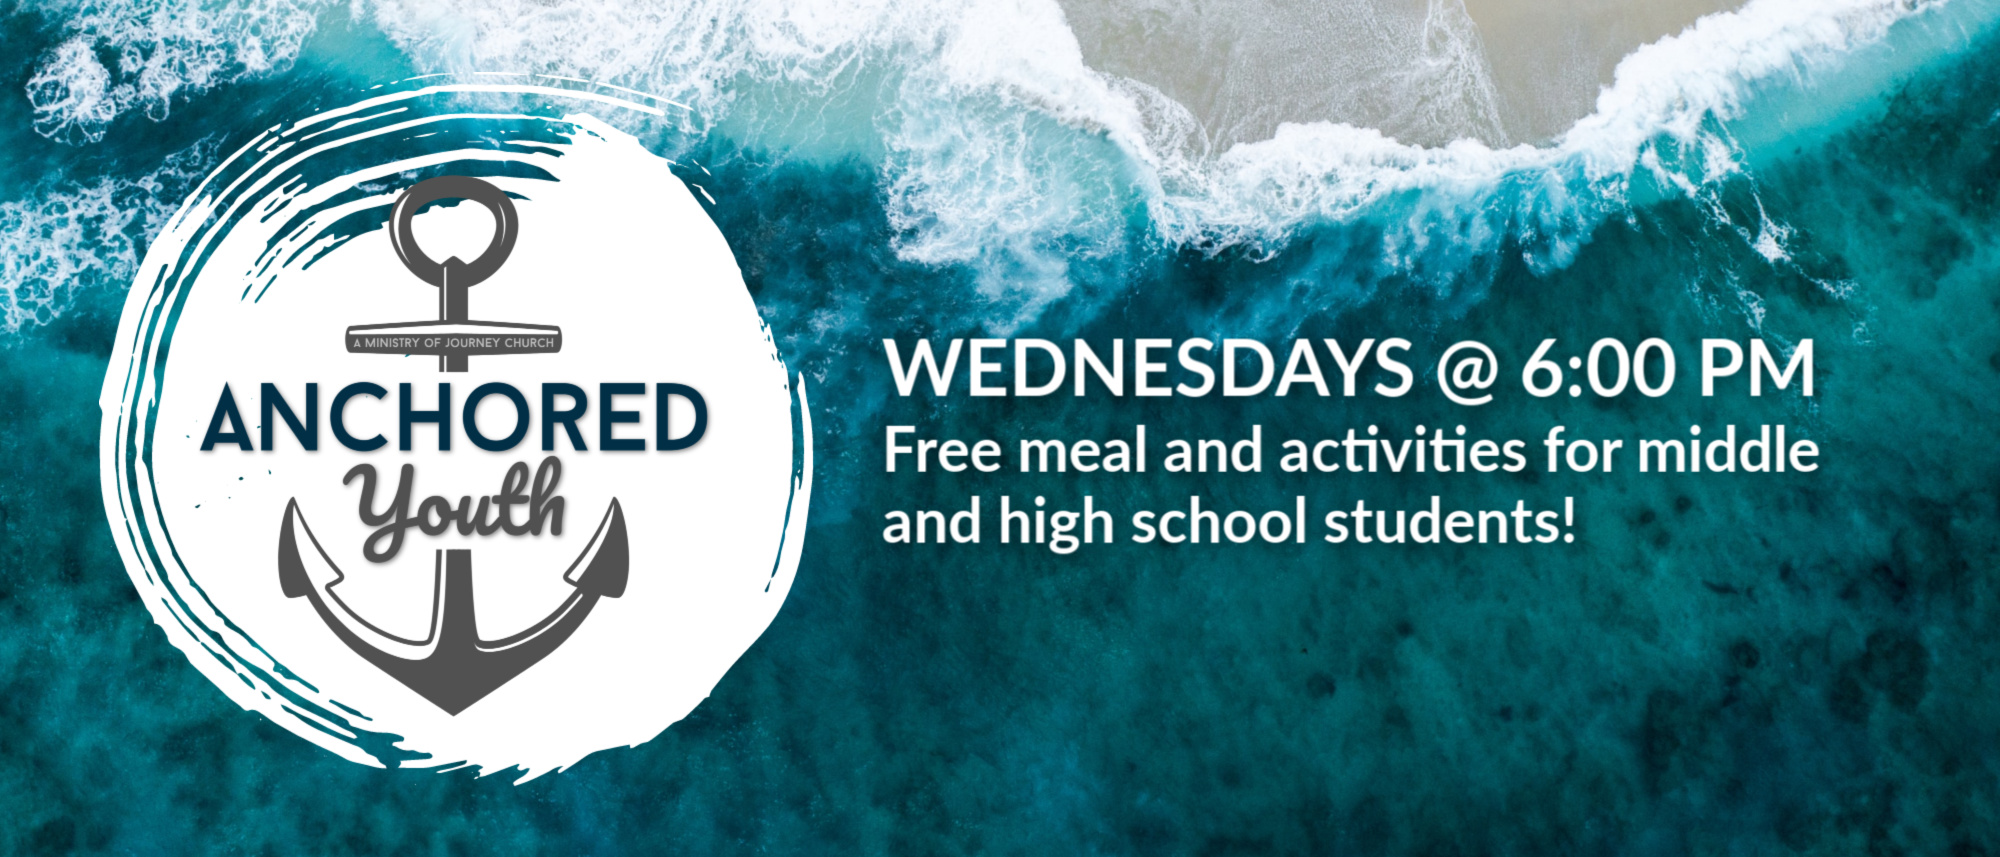 Anchored Youth meet on Wednesday nights at 6 PM at Journey Church